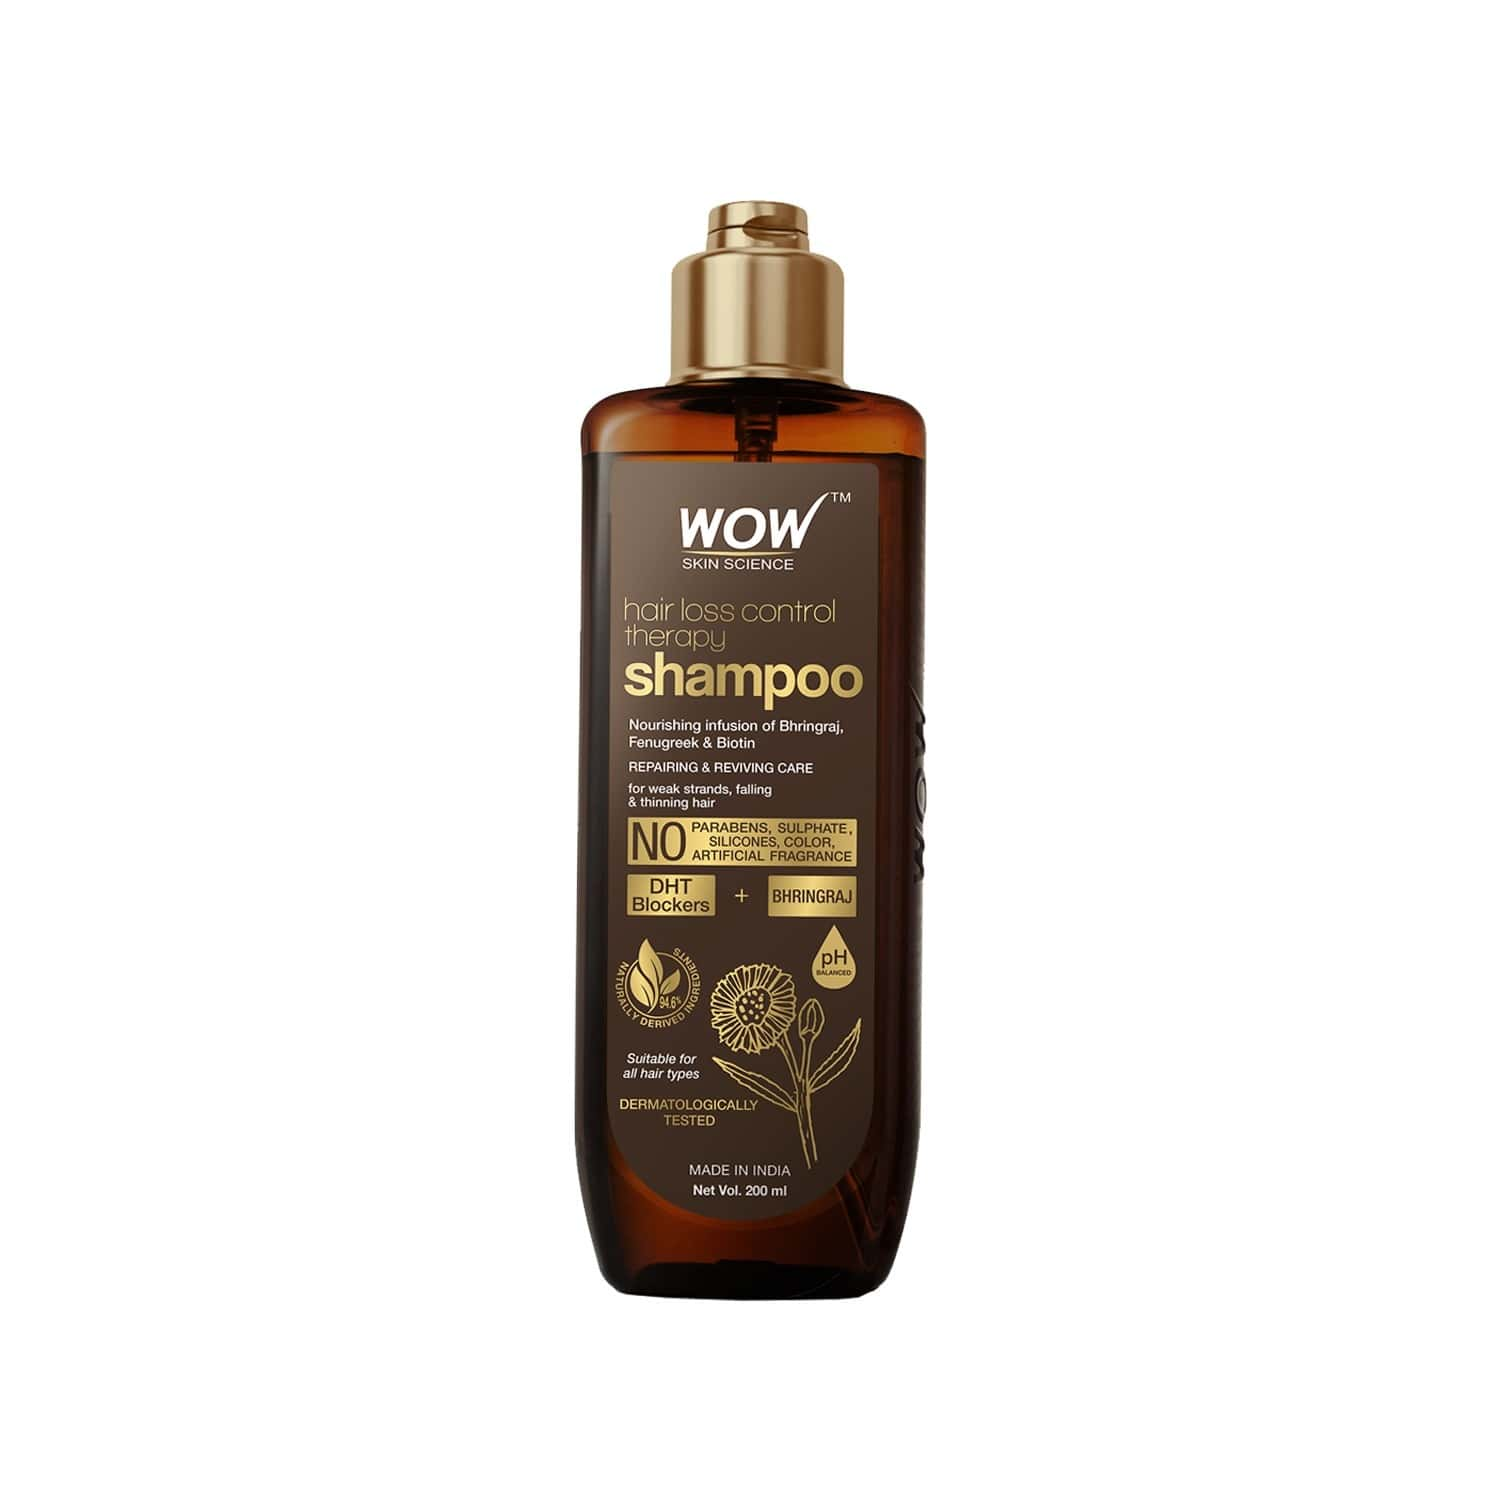 Wow Skin Science Hair Loss Control Therapy Shampoo - 200ml